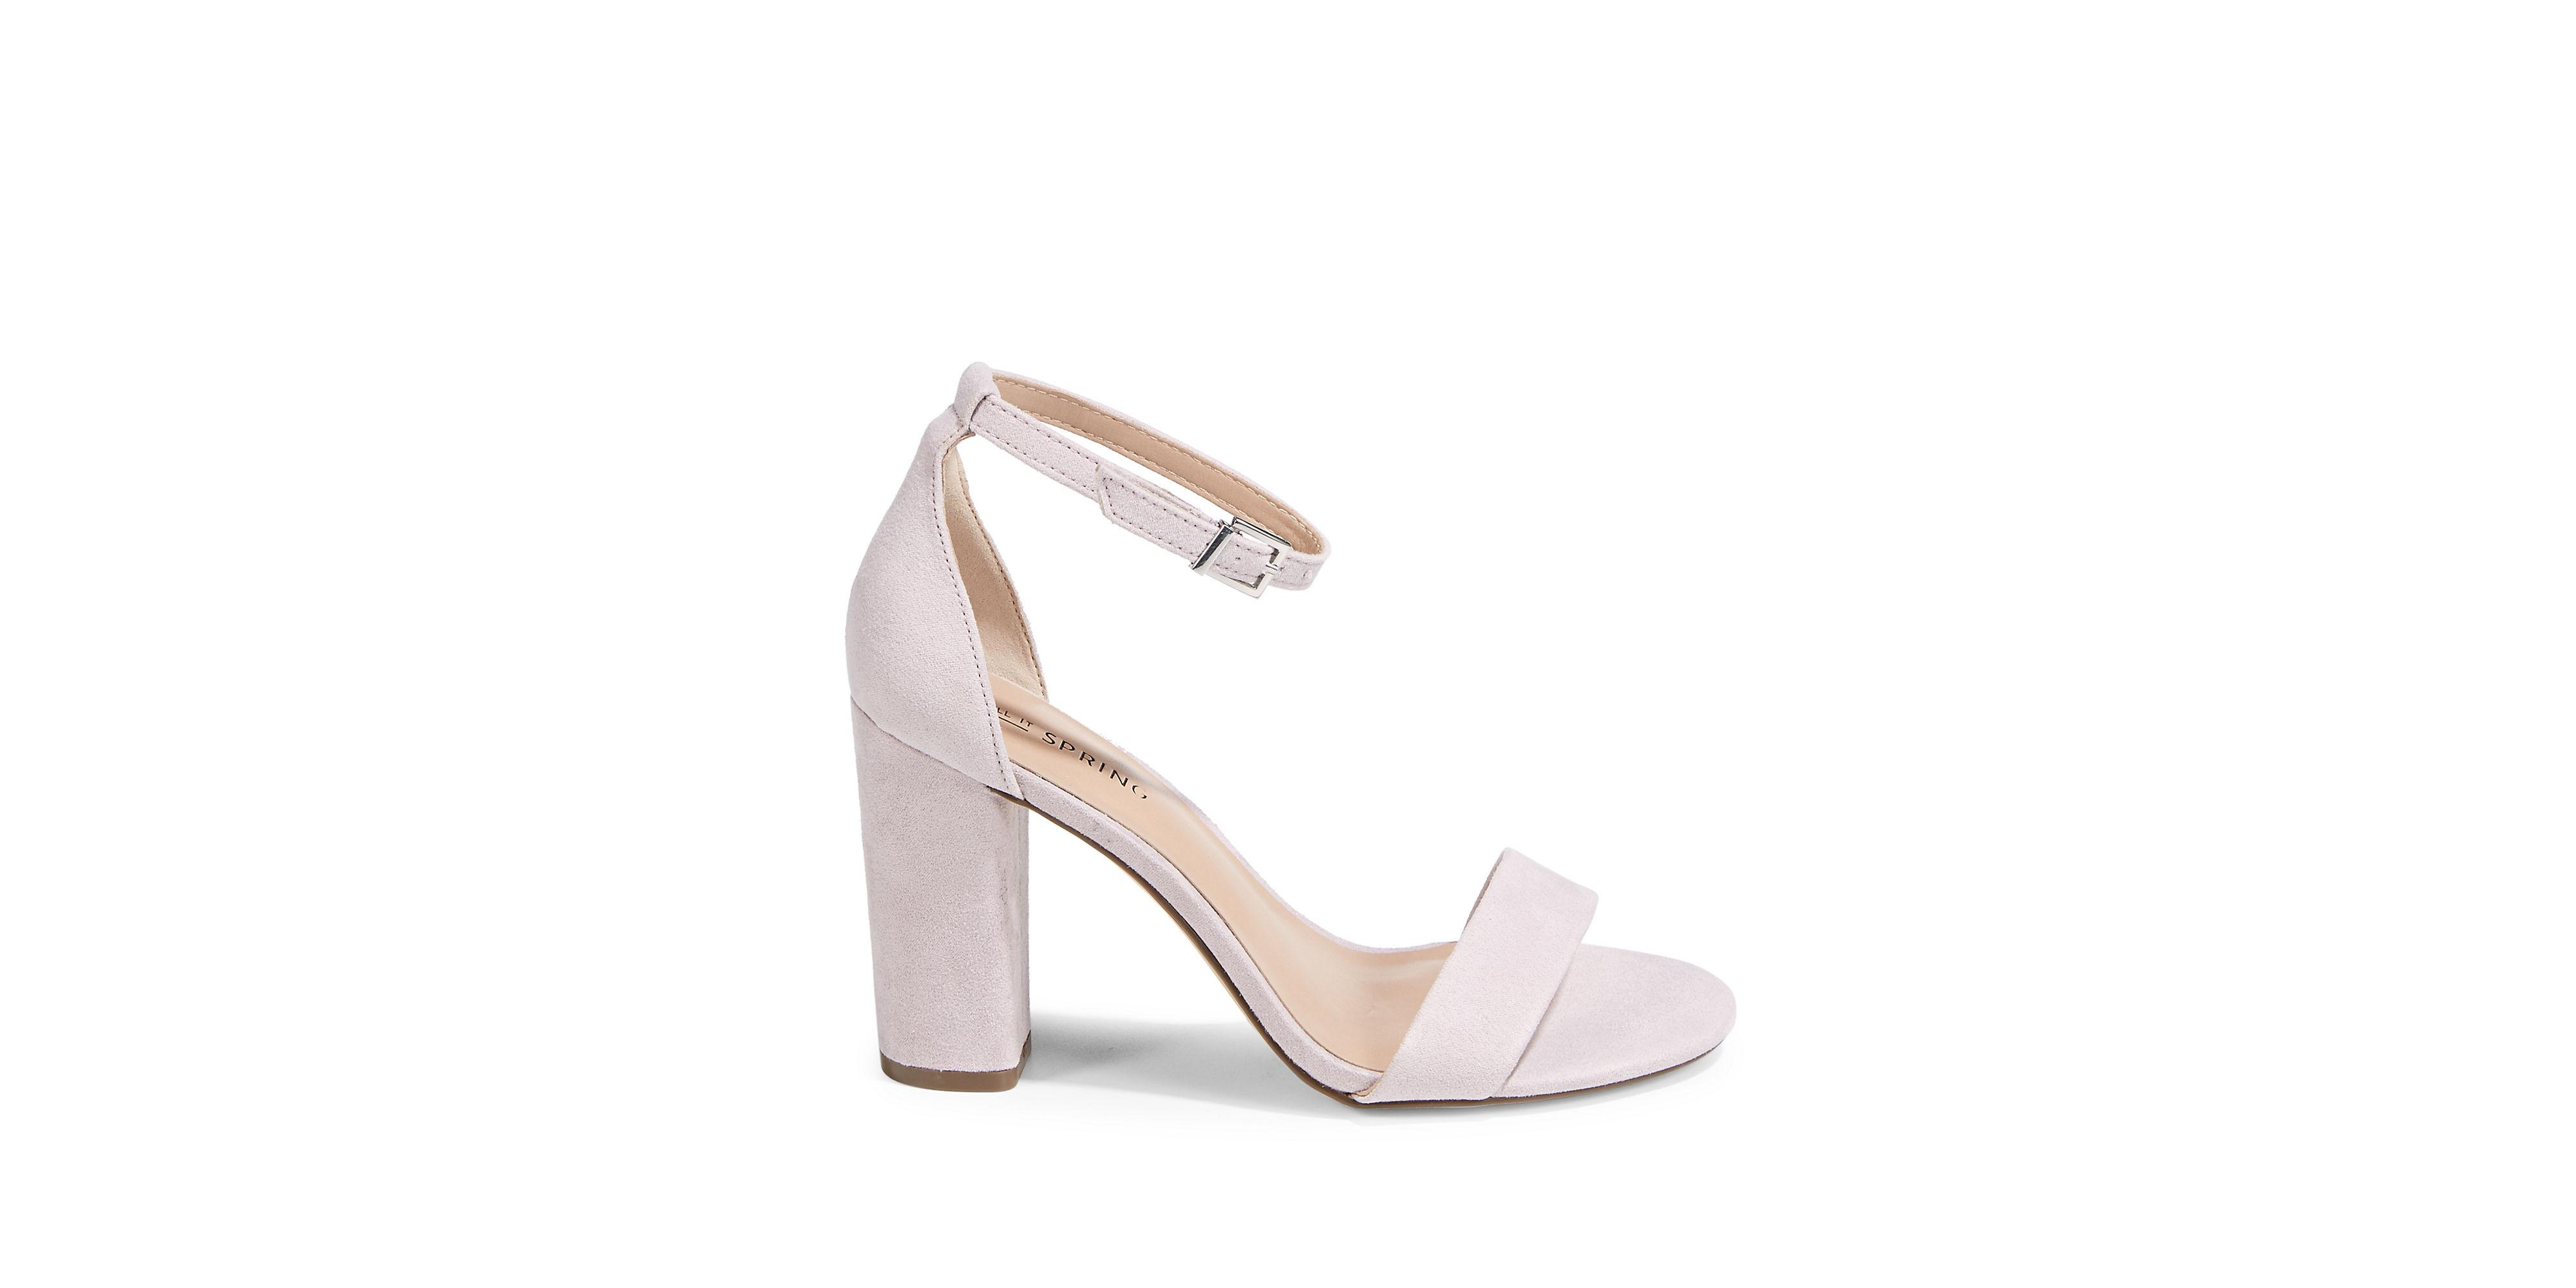 3c11d1ea725 Lyst - Call It Spring Loreg Ankle-strap Heeled Sandals in Purple